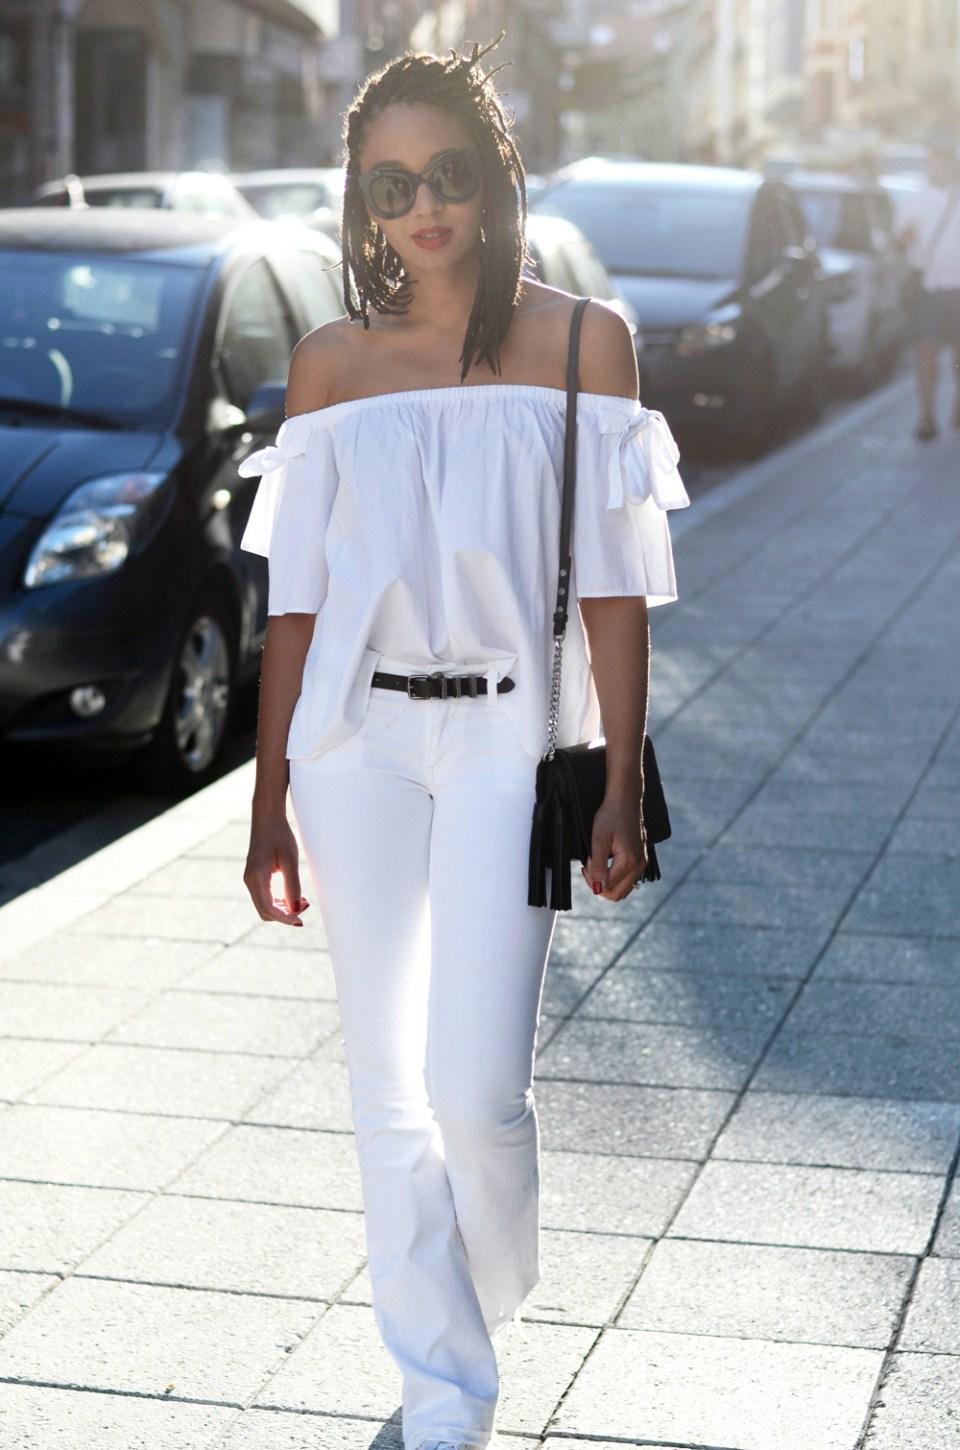 mercredie-blog-fashion-blogger-mode-geneve-suisse-santander-celine-marta-all-white-outfit-flare-elisabetta-franchetti-ceinture-kooples9